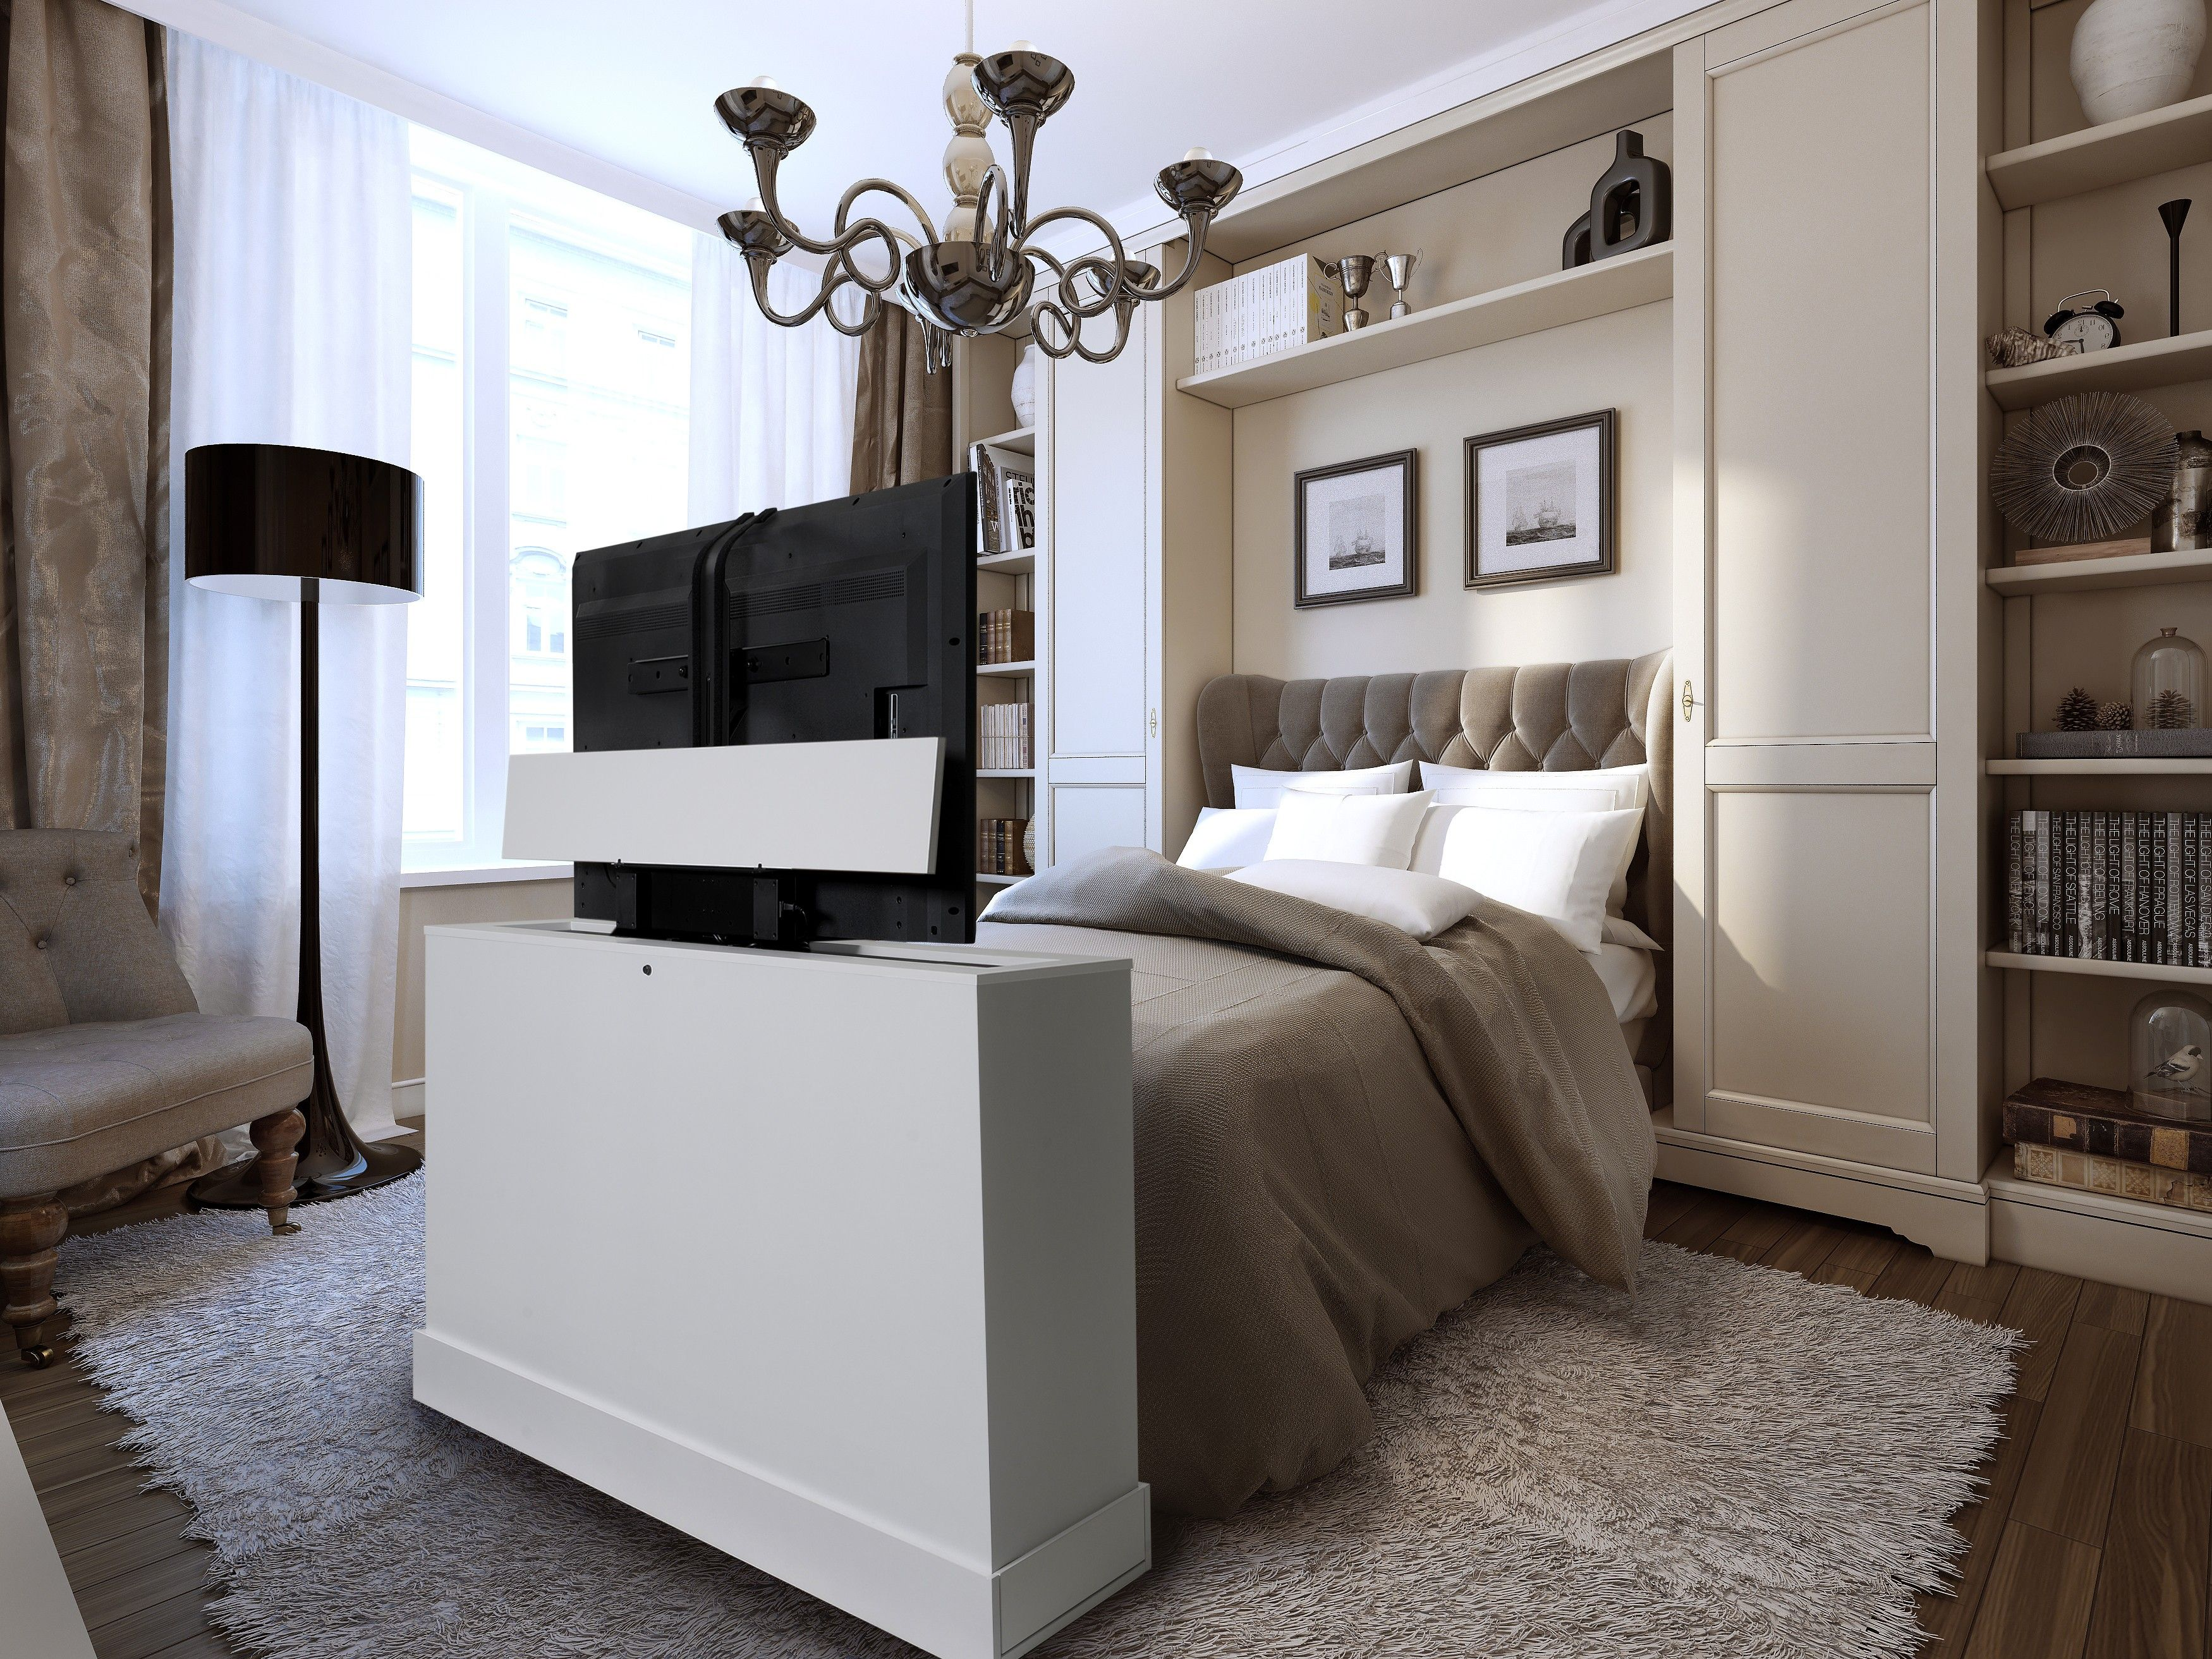 Slim Tv Unit Azura White Finish Foot Of The Bed Lifts This Unit Is A